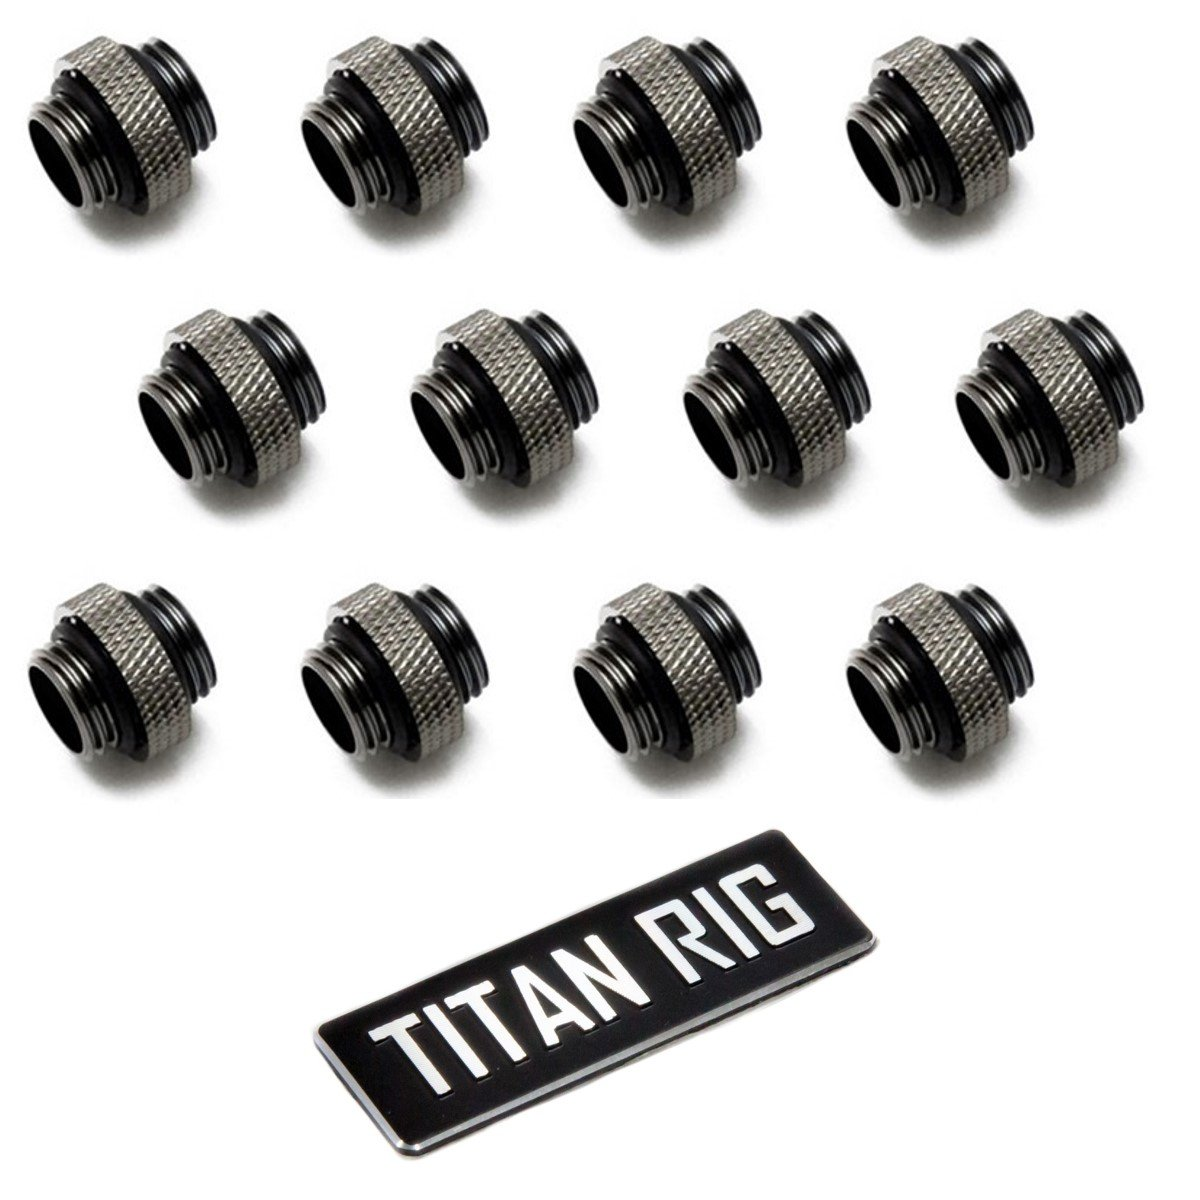 "XSPC G1/4"" 5mm Male to Male Fitting, Black Chrome, 12-Pack"